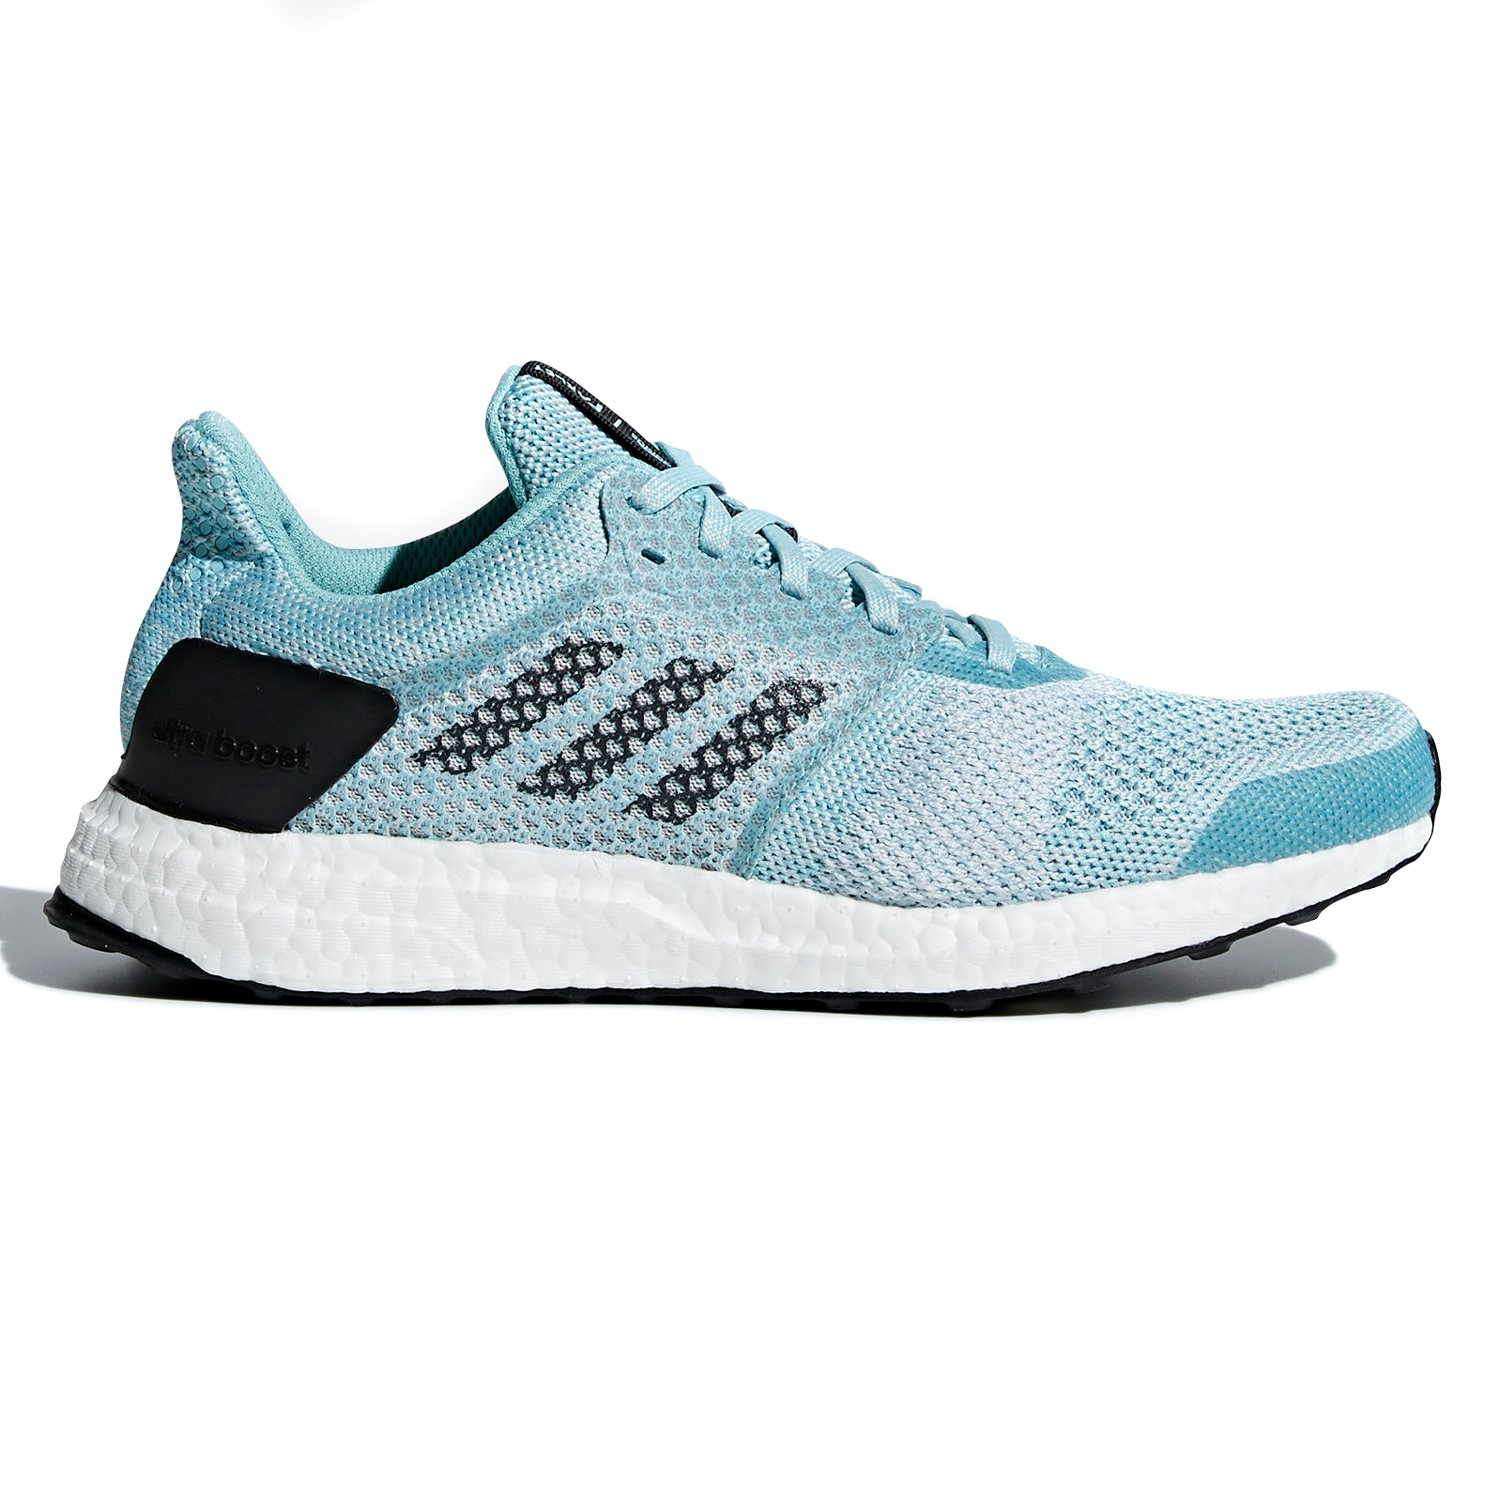 adidas Ultra Boost Parley Women's Running Shoe | The Running